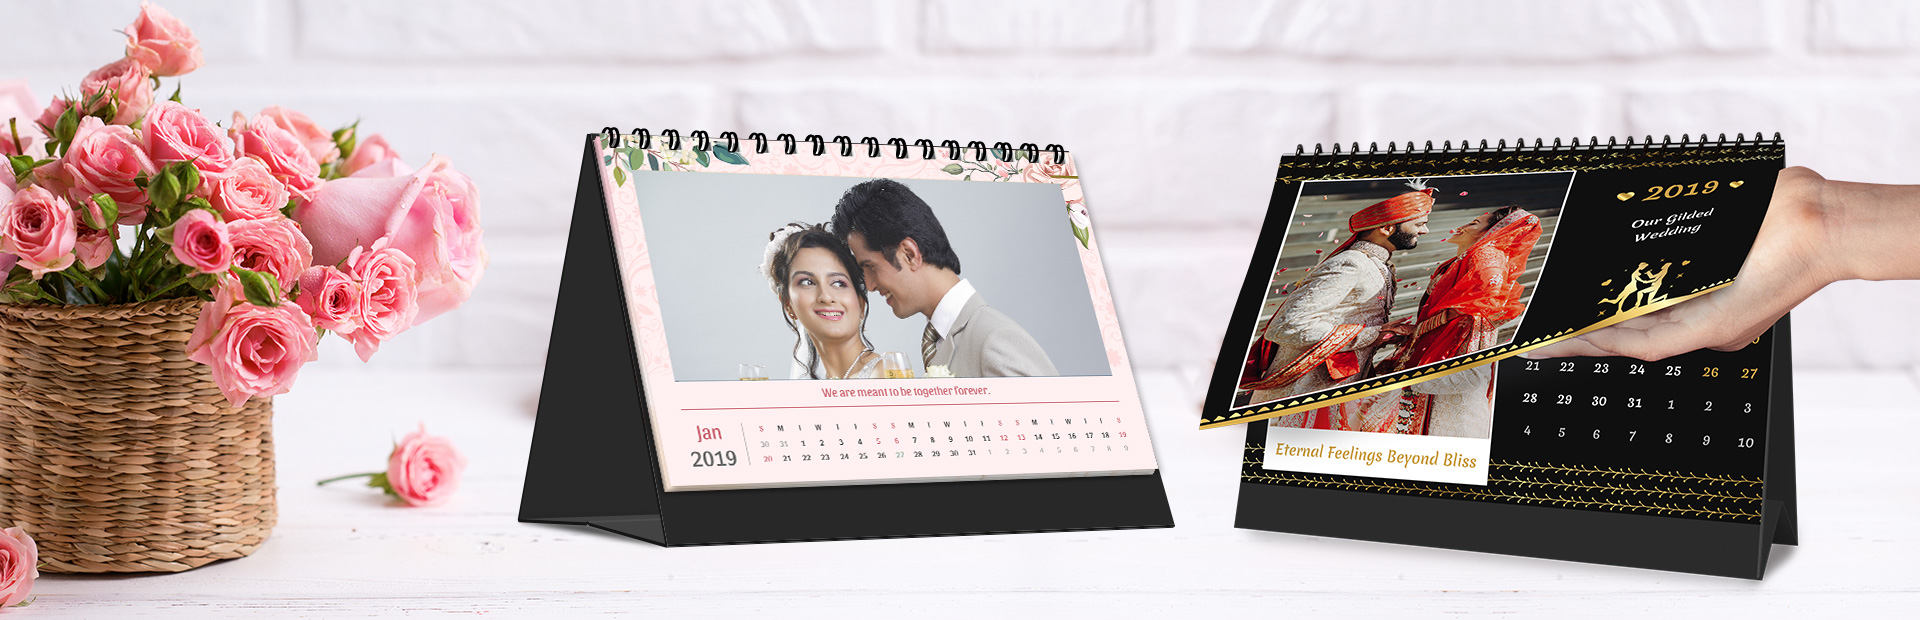 Wedding Desk Calendars Online